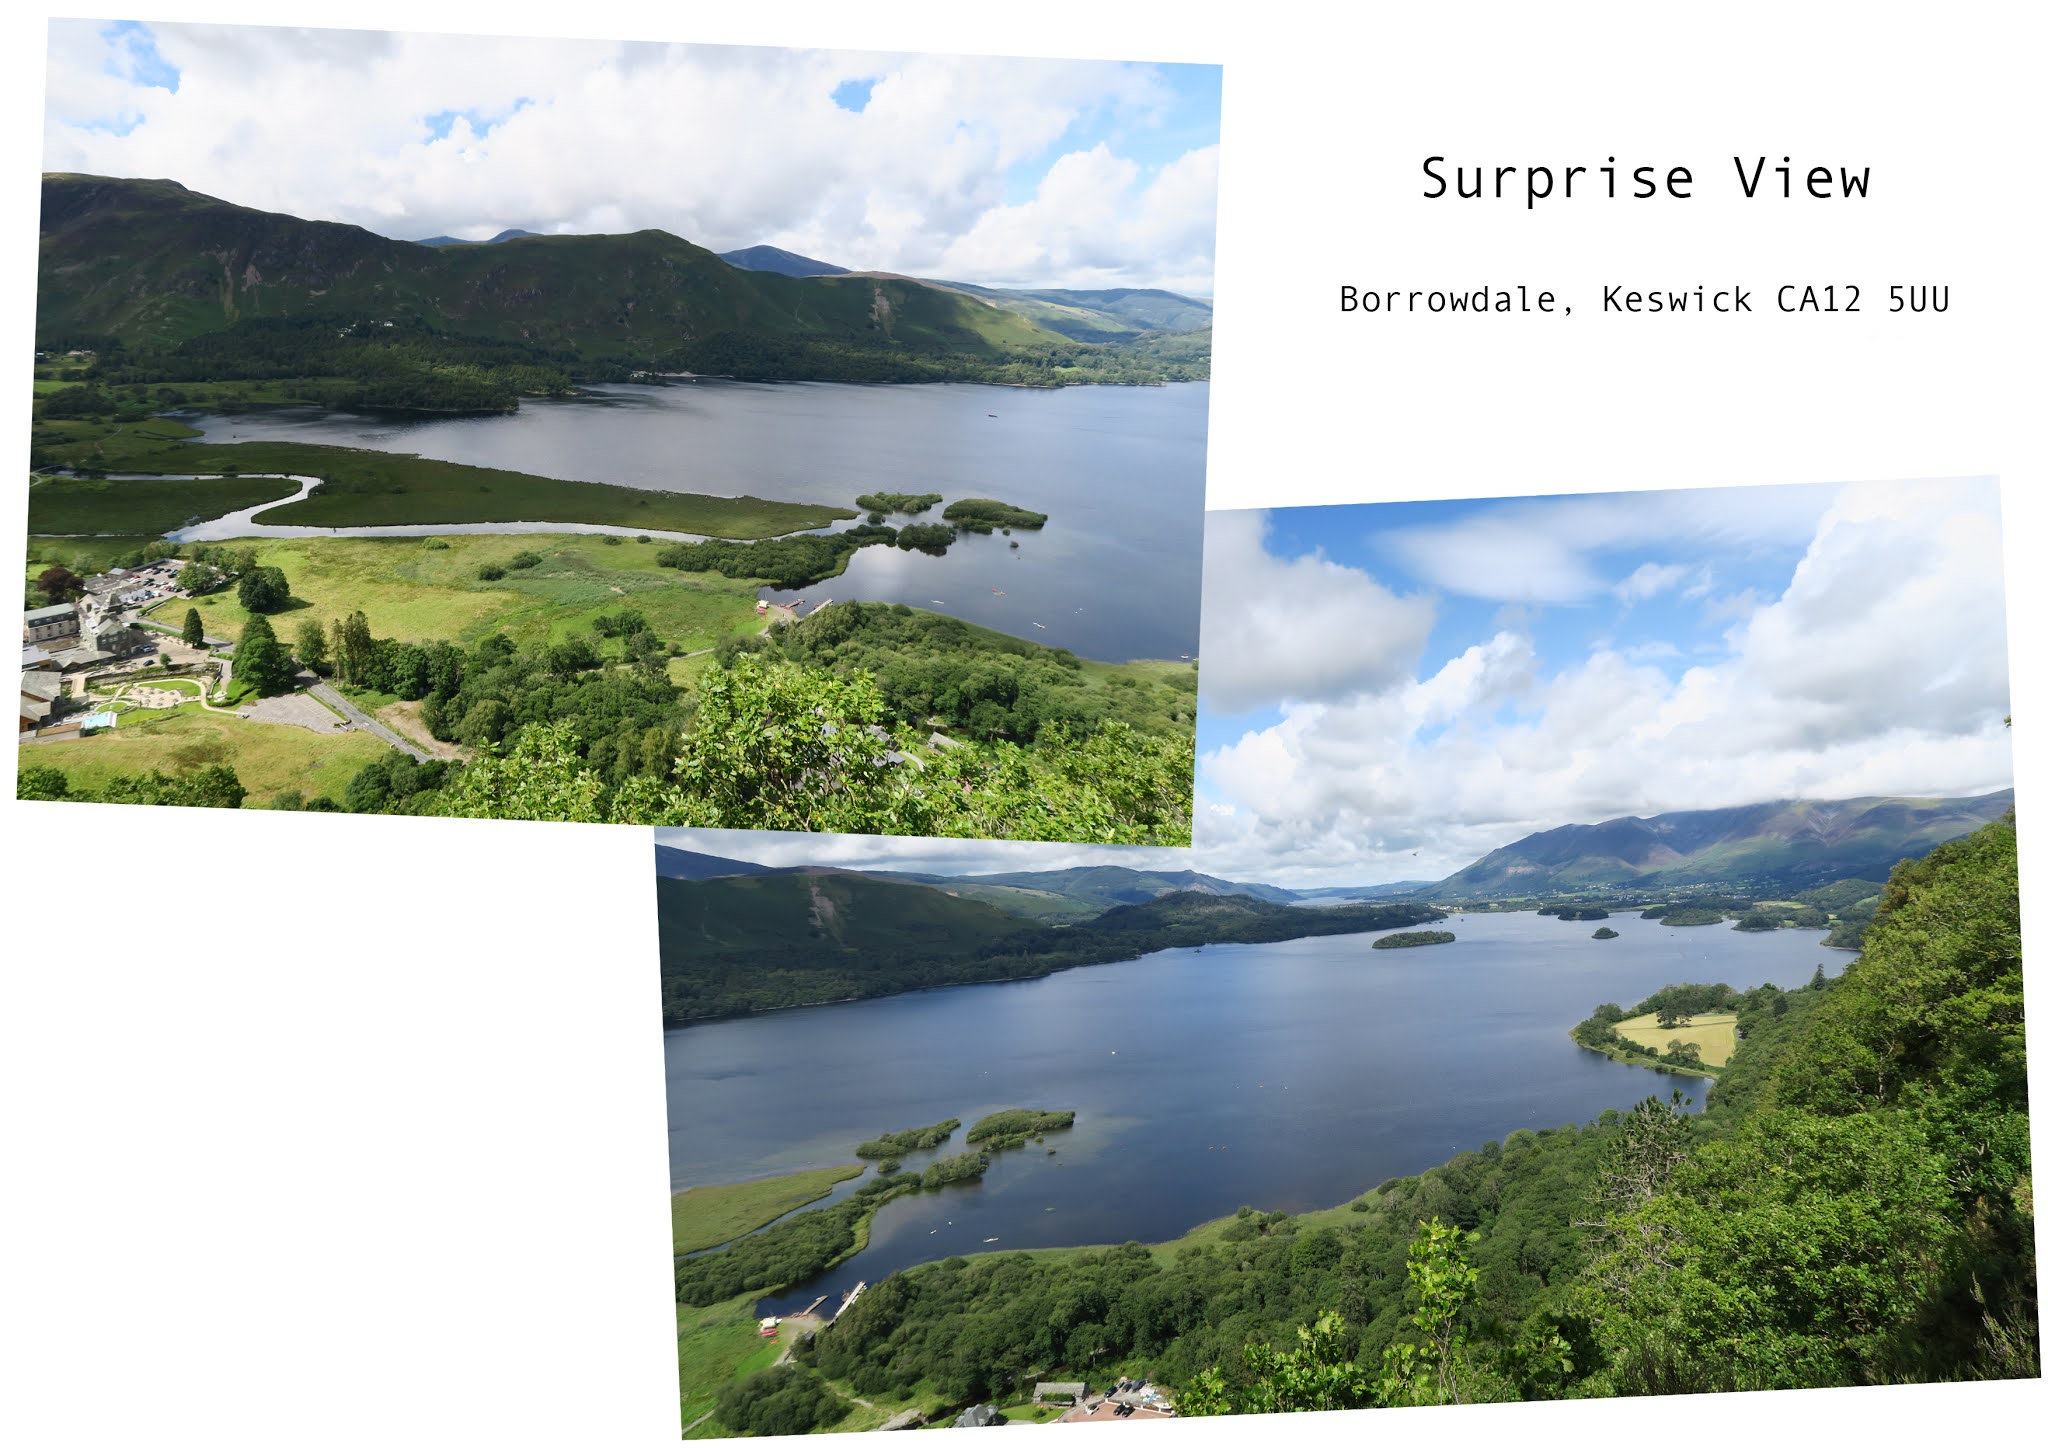 two images. Both are of the wide Derwentwater lake which is surrounded by green hills